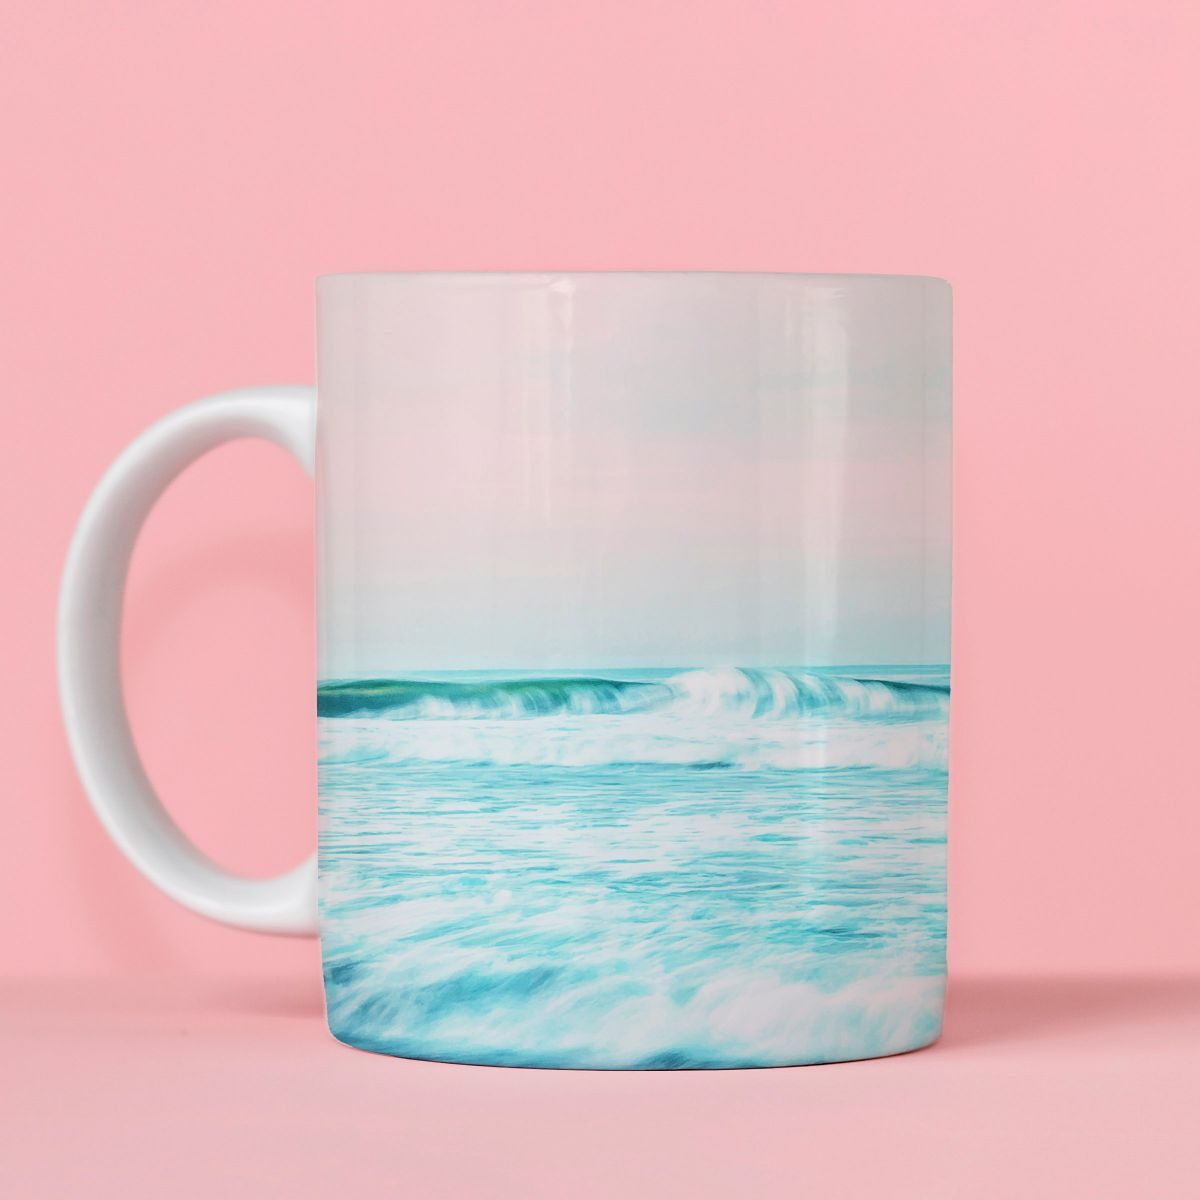 Unique mugs with your prints